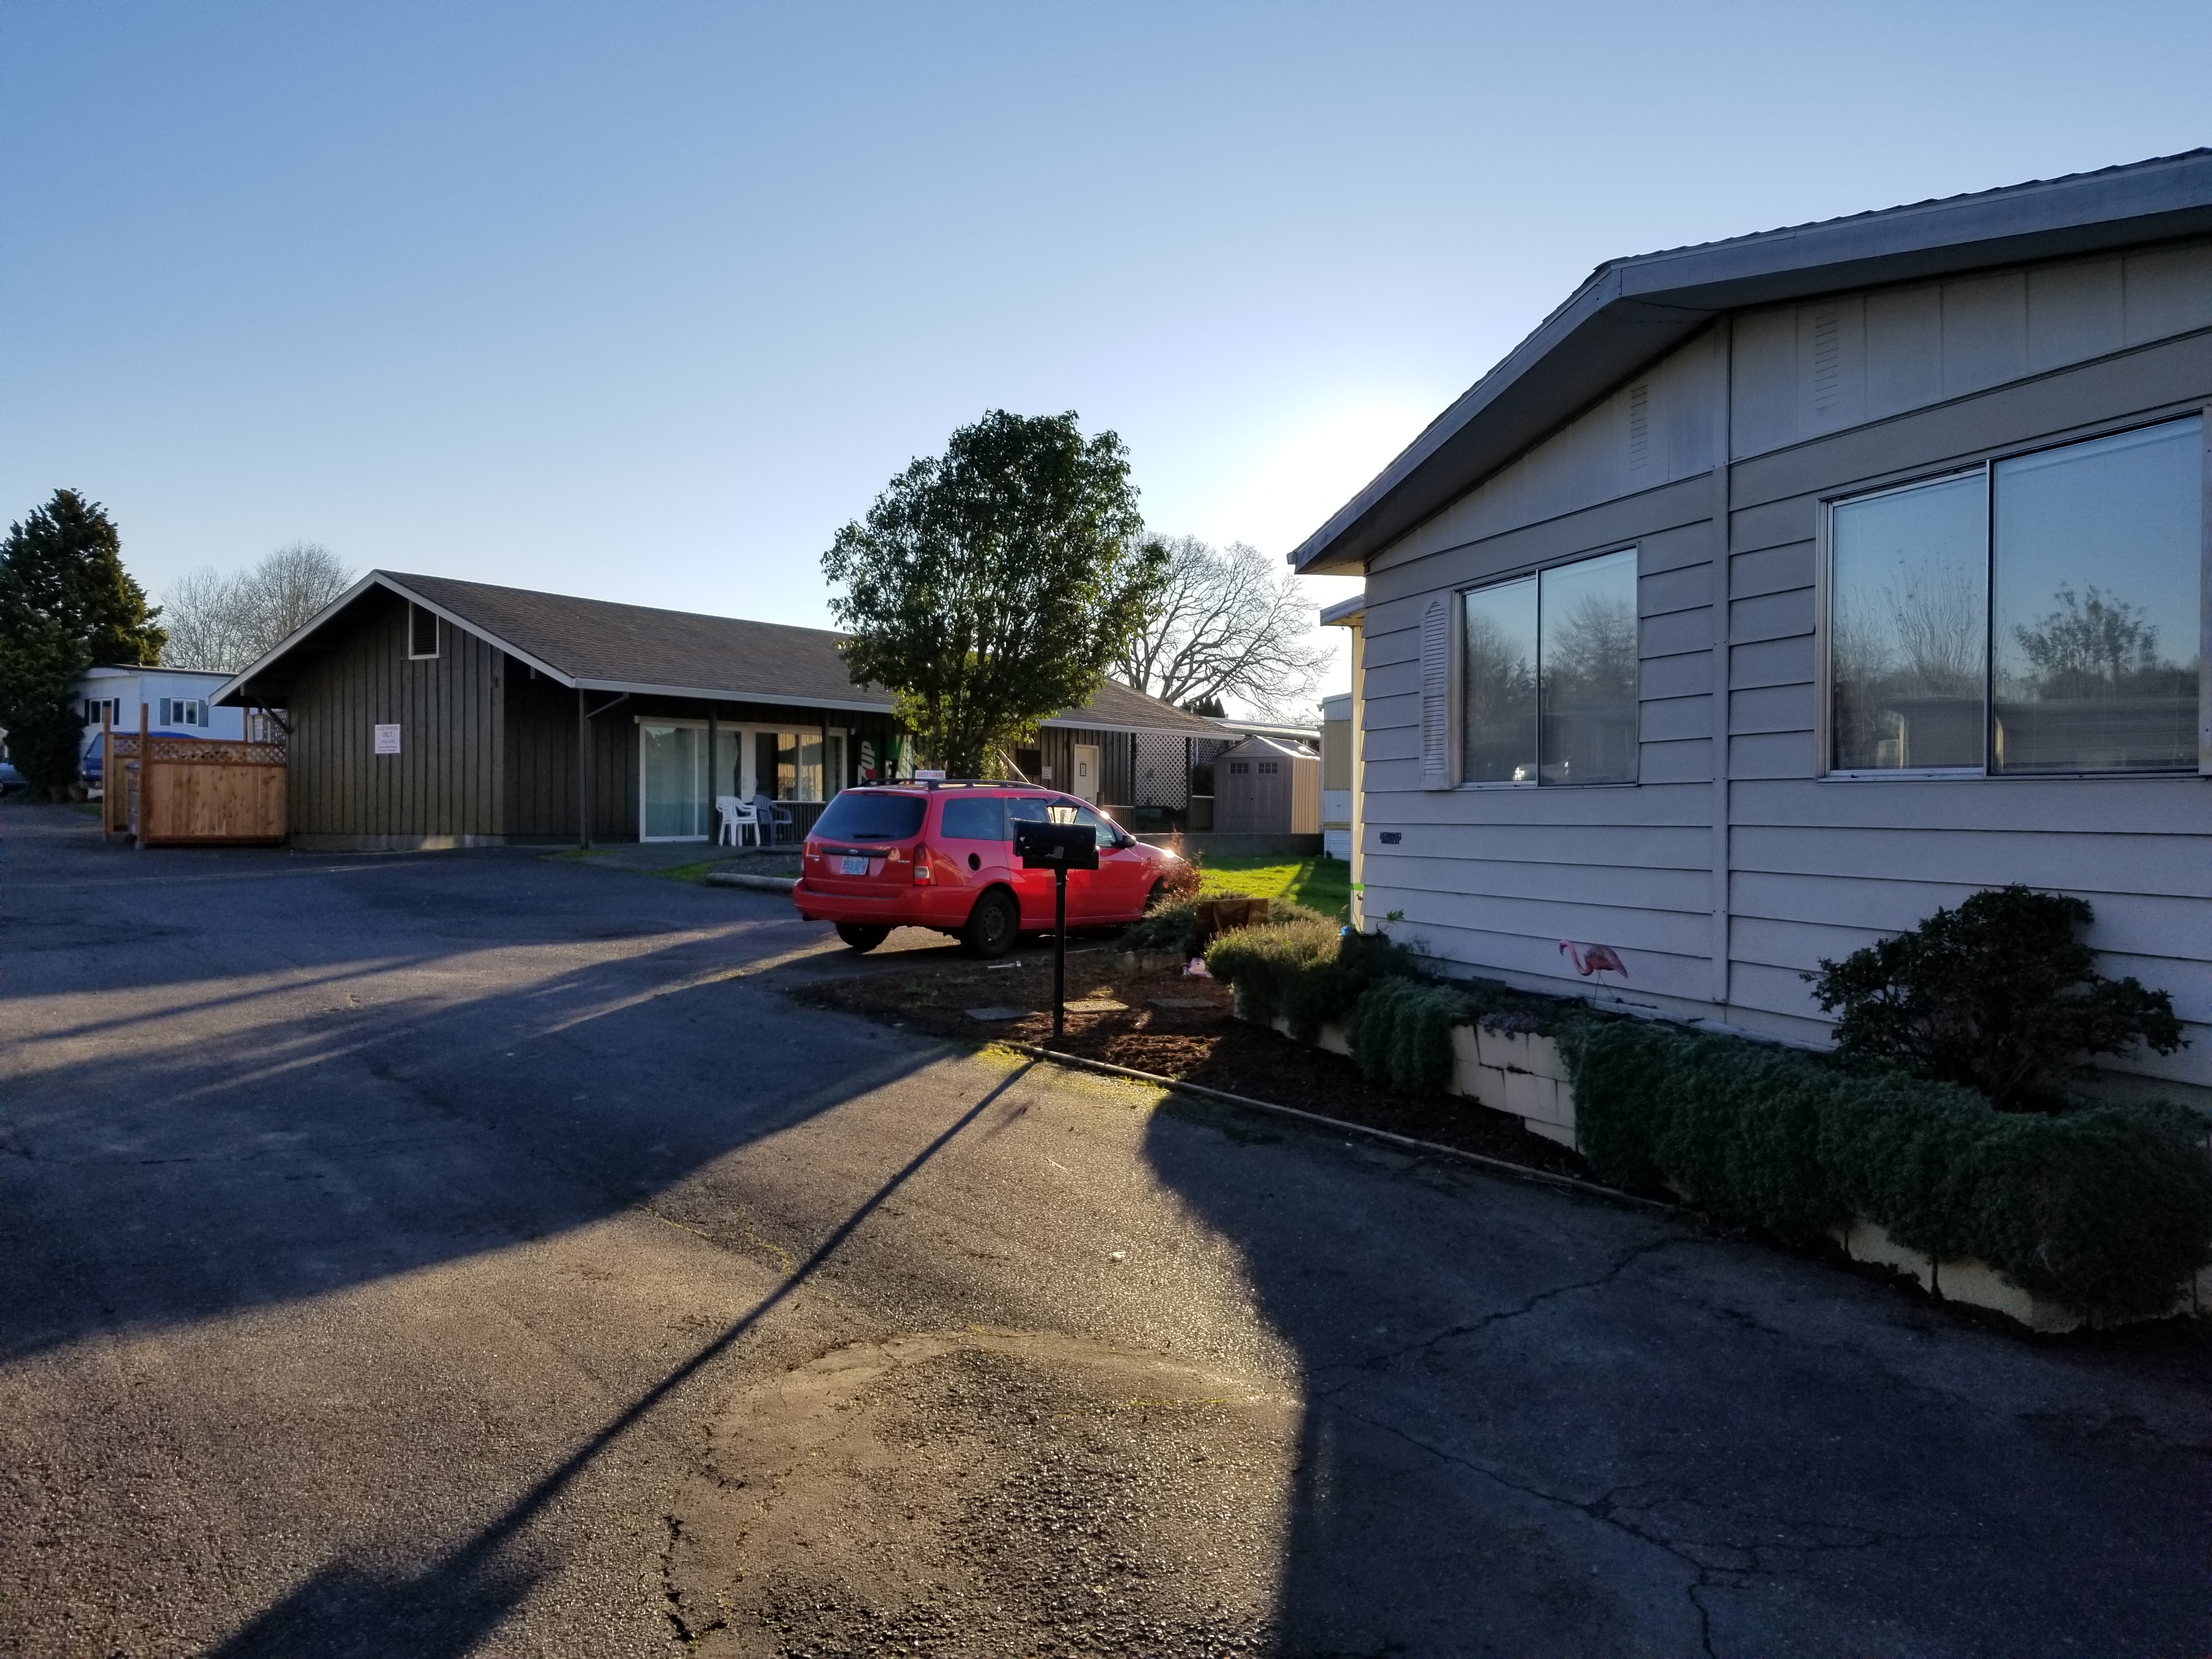 Double Wide Unit at Mobile Home Corral